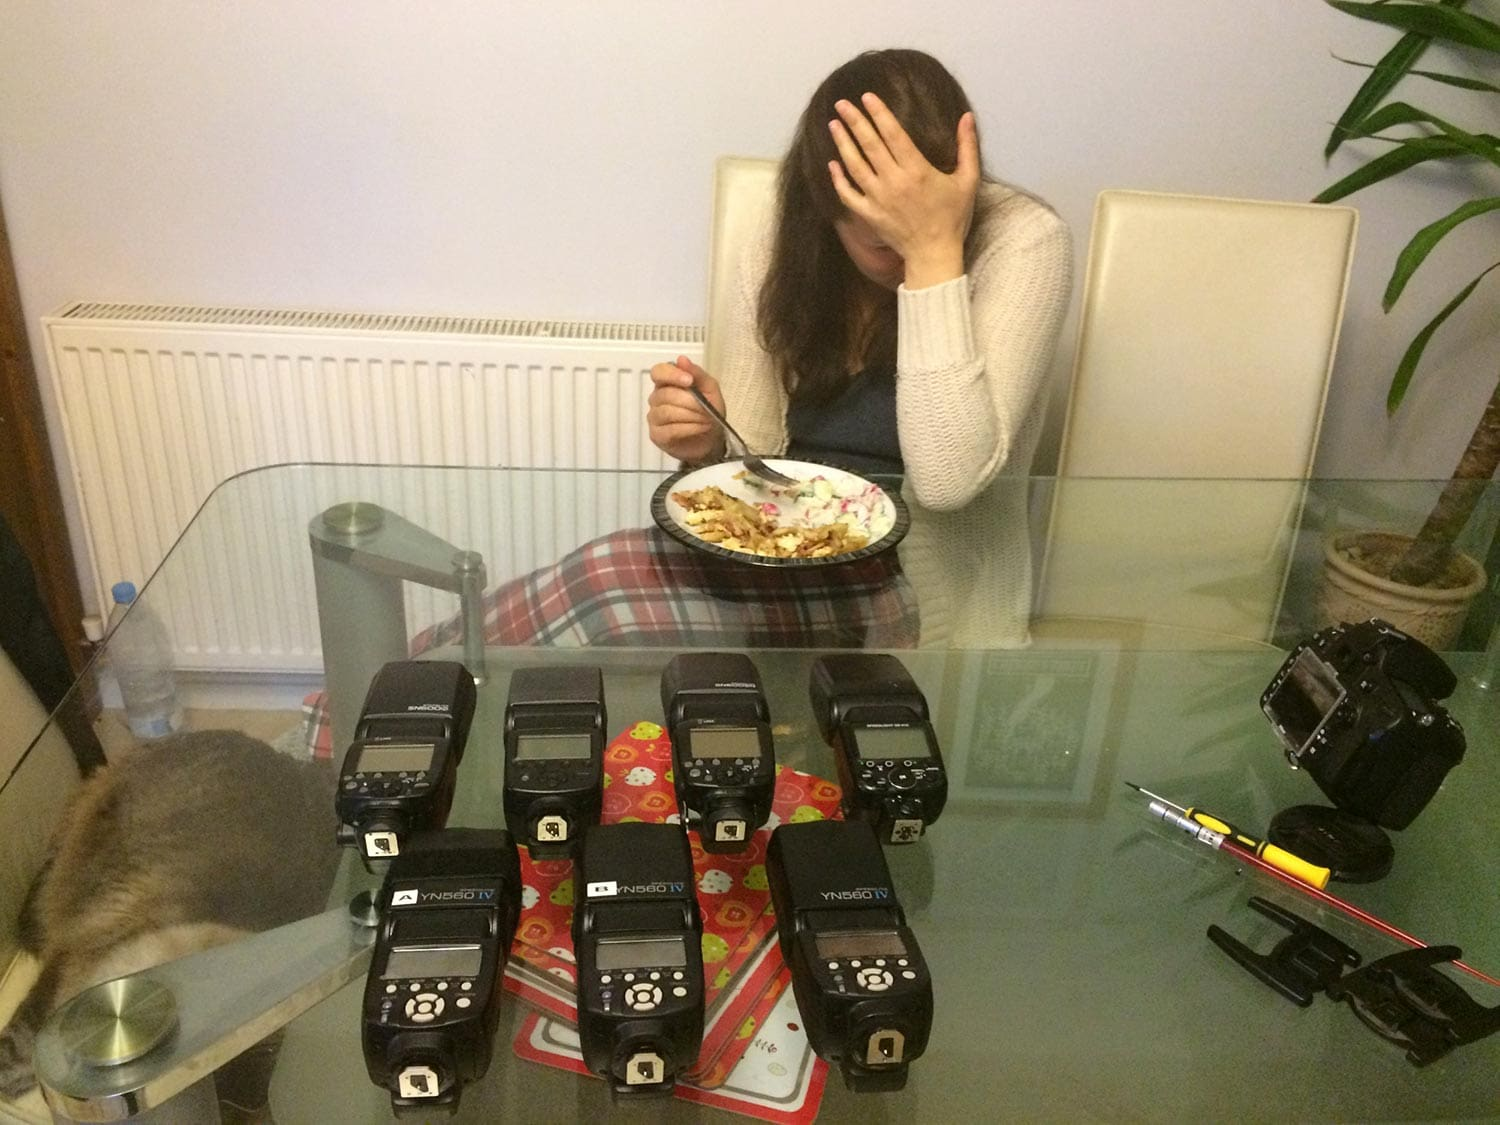 My wife's reaction to me wanting to buy more flashes